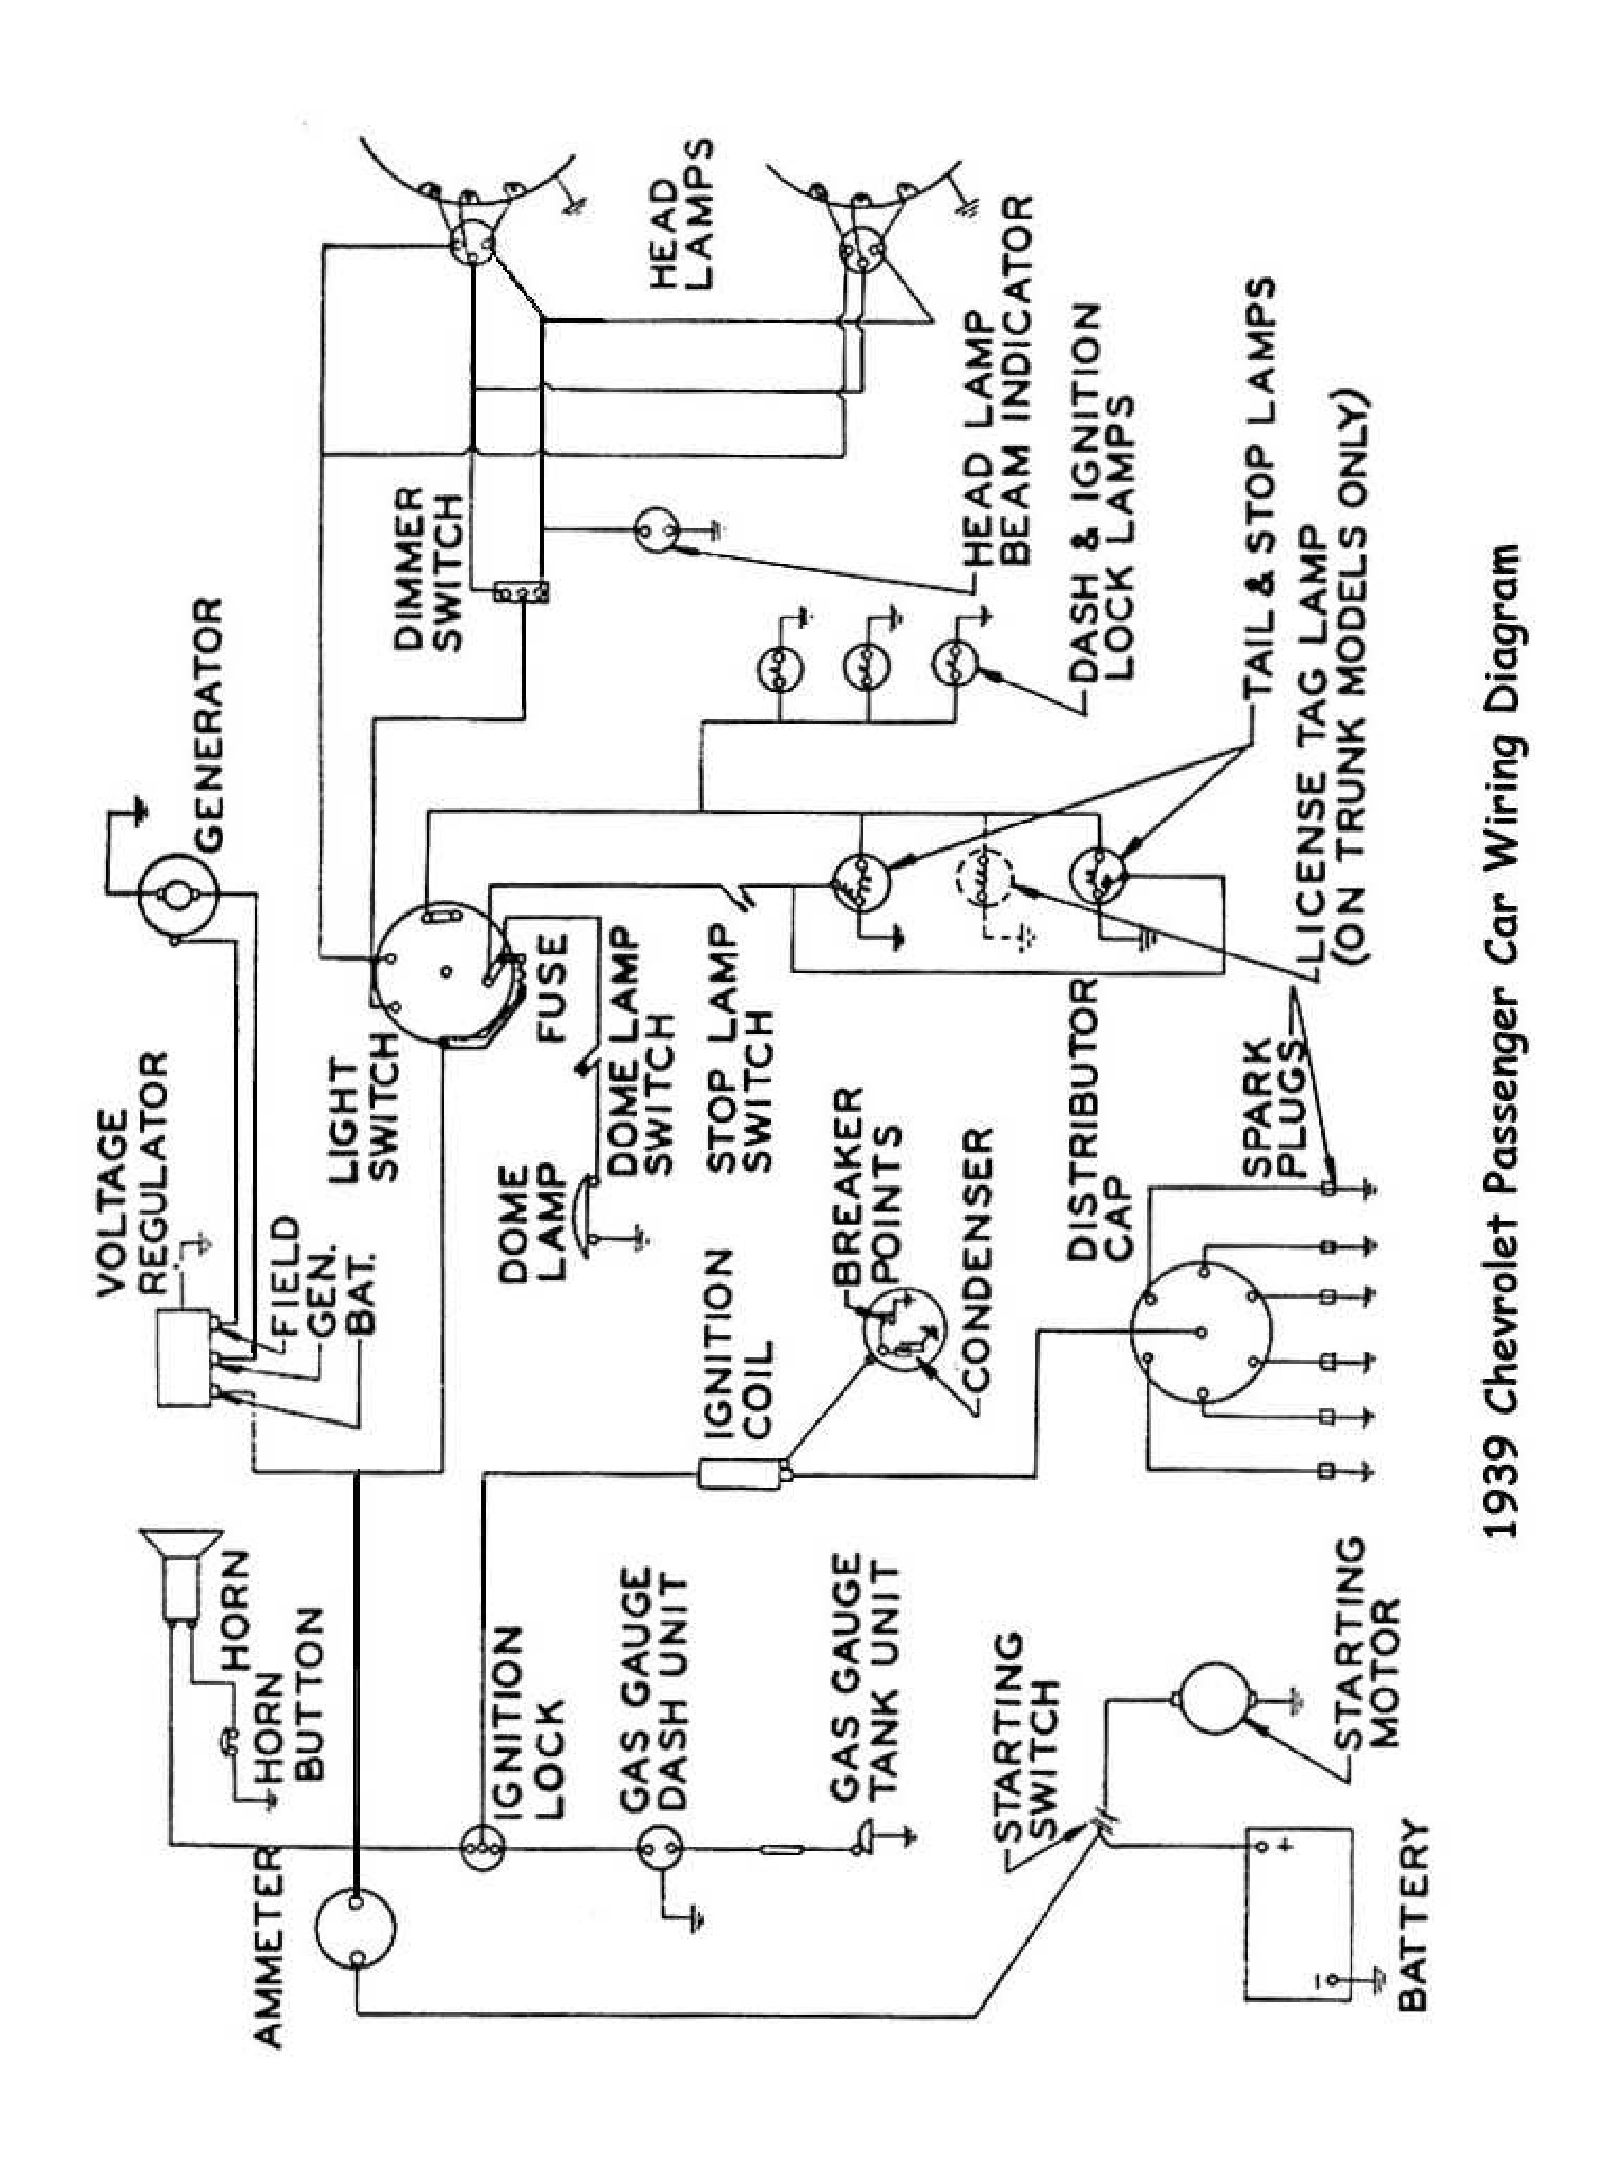 39car chevy wiring diagrams are truck cap wiring diagram at bakdesigns.co